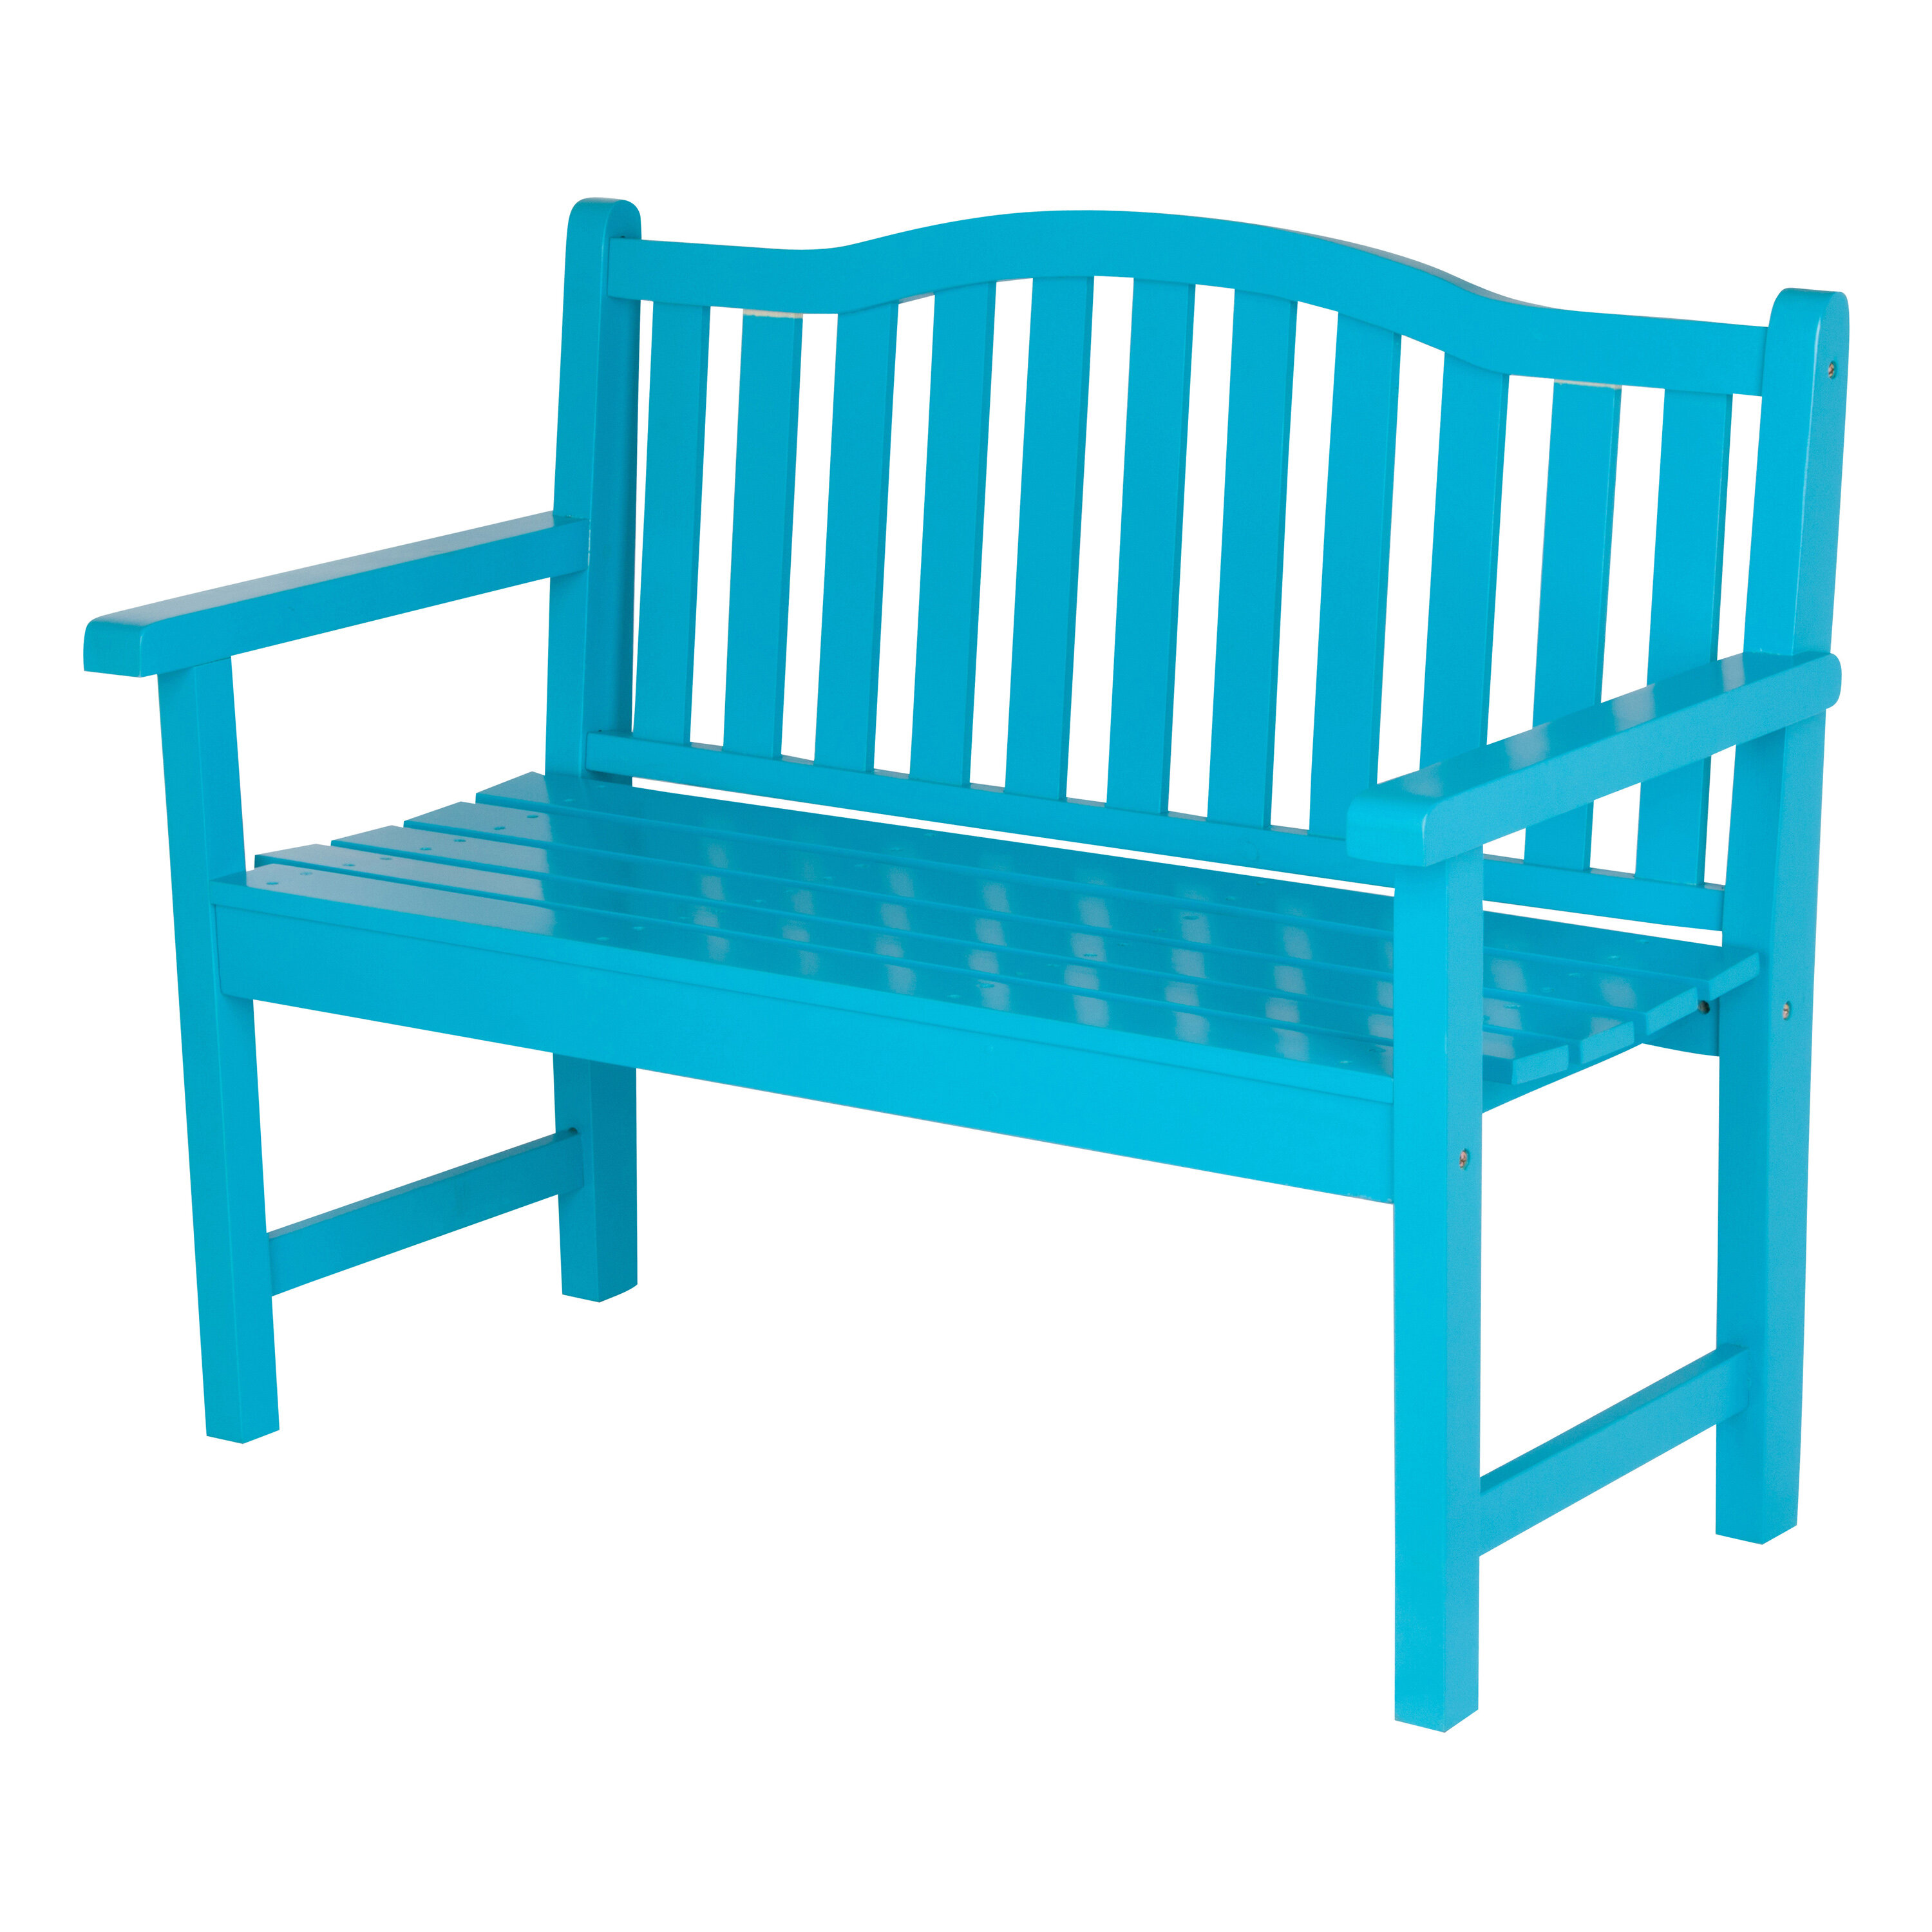 Phenomenal Winston Cedar Wood Garden Bench Bralicious Painted Fabric Chair Ideas Braliciousco